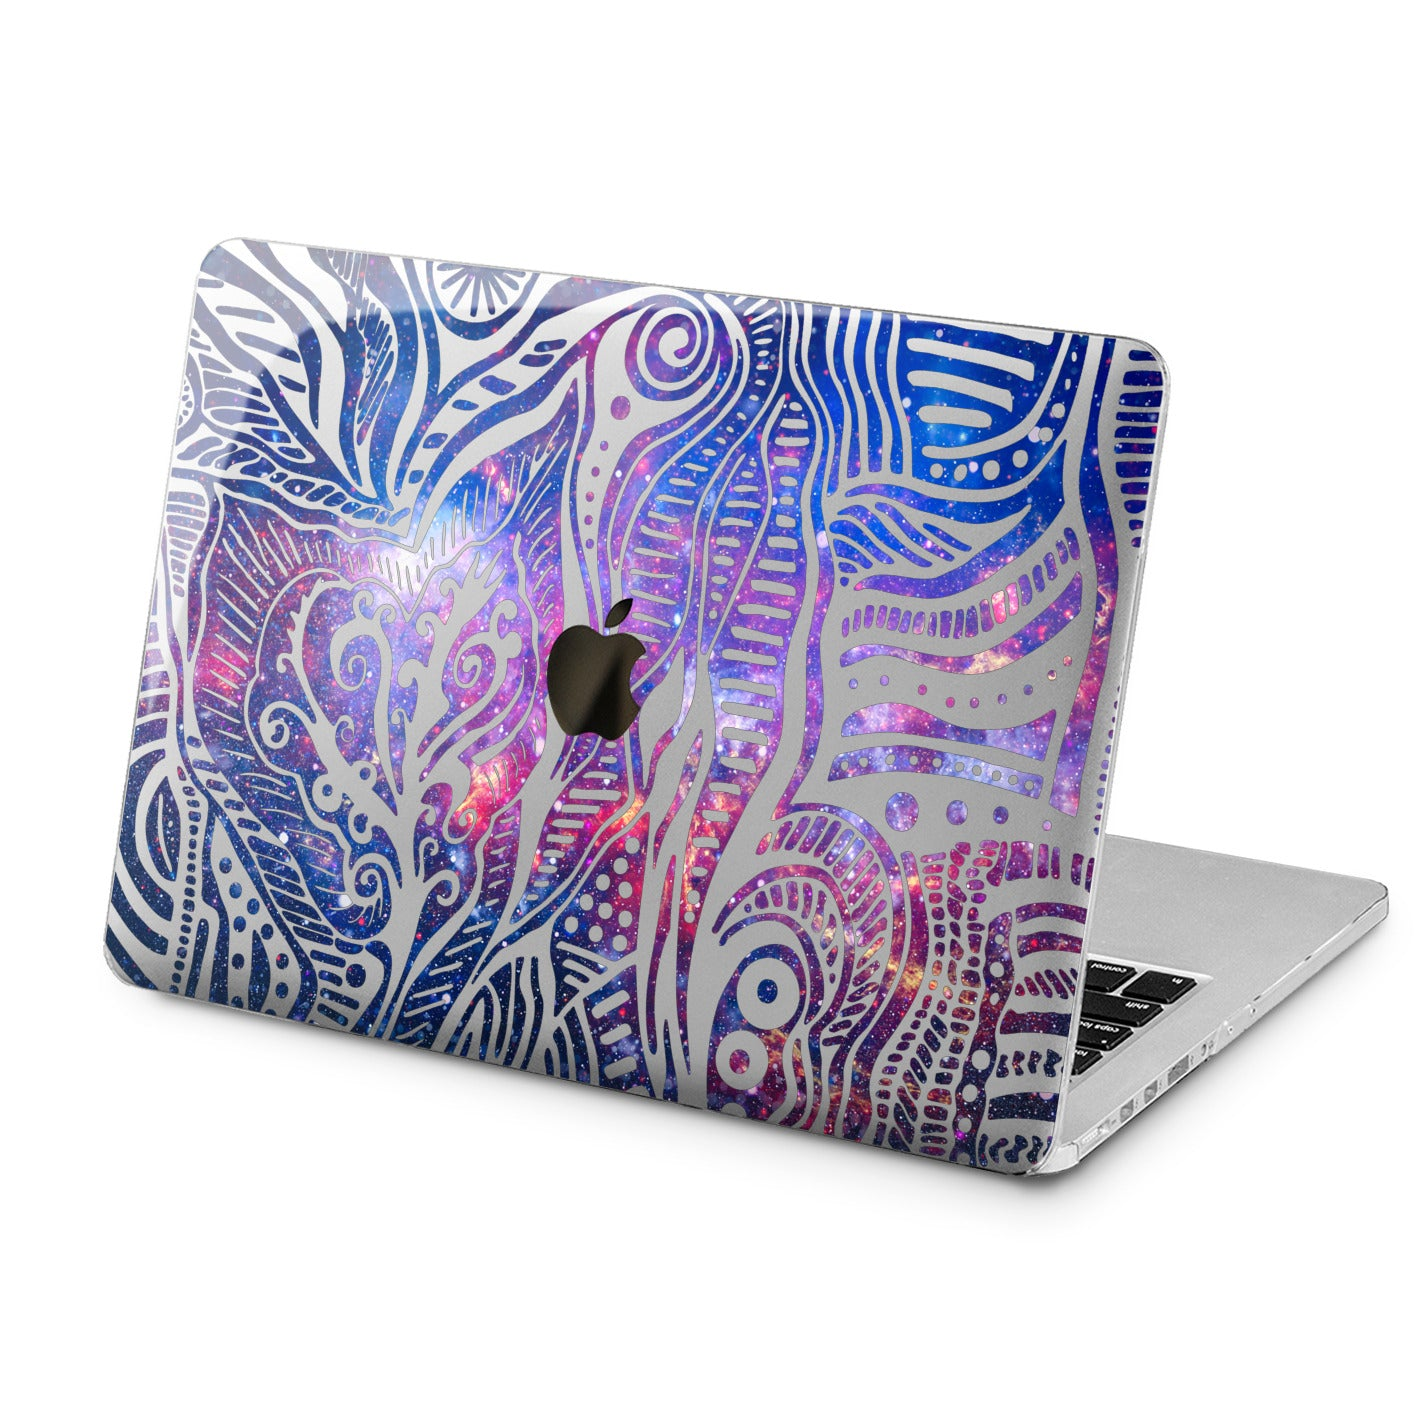 Lex Altern Lex Altern Galaxy Ornament Case for your Laptop Apple Macbook.